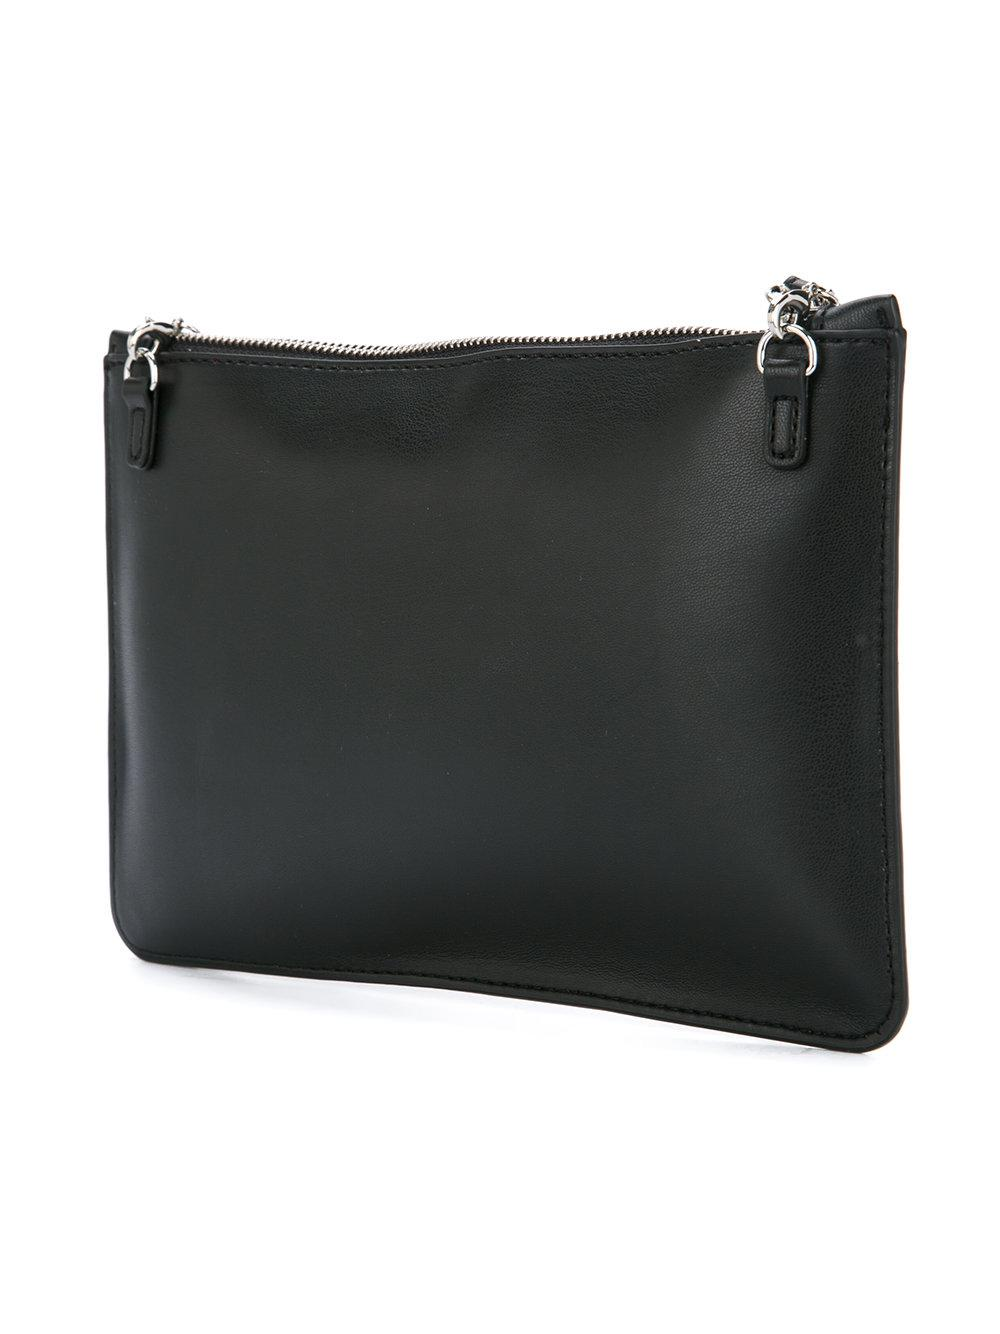 b97c756141a9 Gallery. Previously sold at  Farfetch · Women s Envelope Bags ...